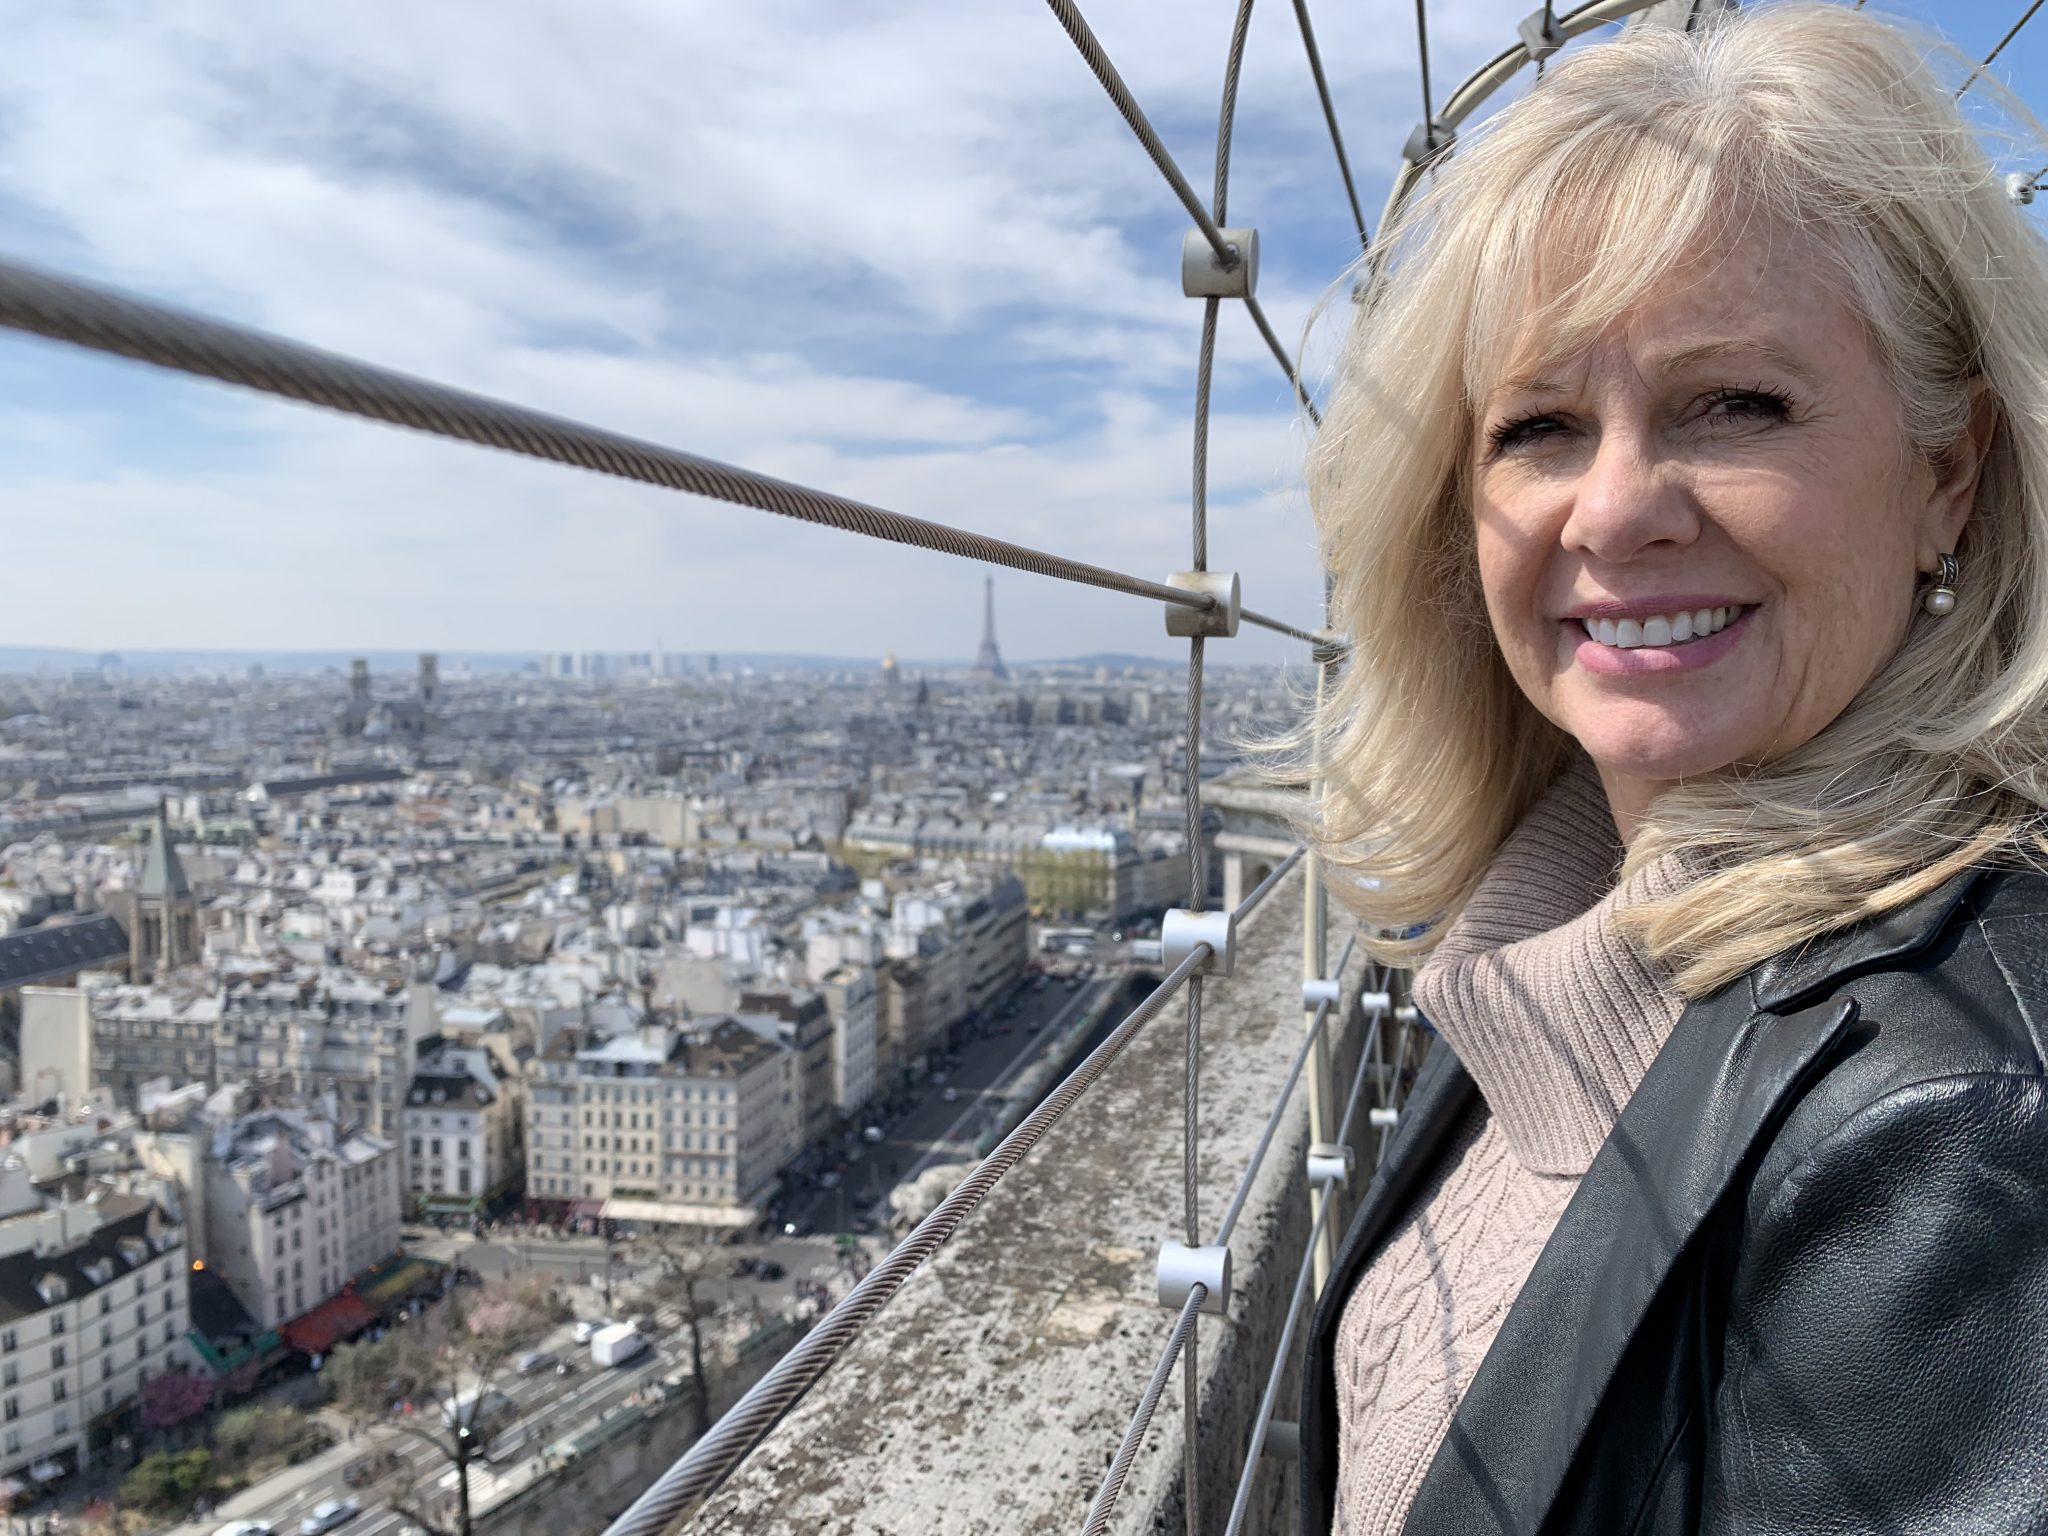 Notre-Dame Audrey on South Tower